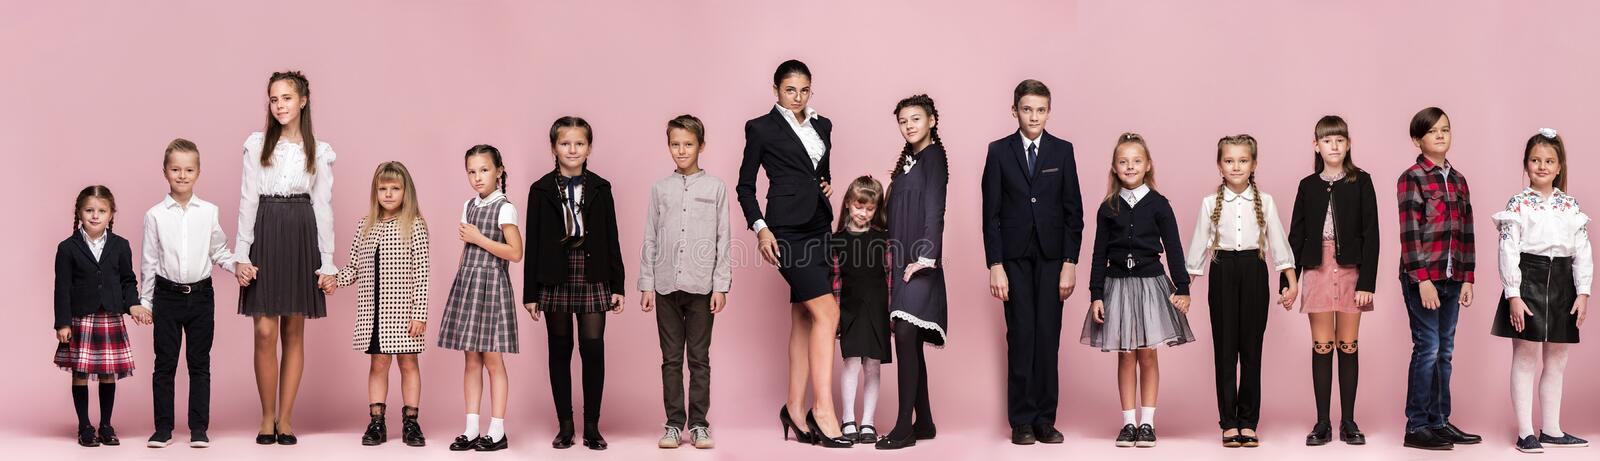 Cute stylish children on pink studio background. The beautiful teen girls and boy standing together royalty free stock image